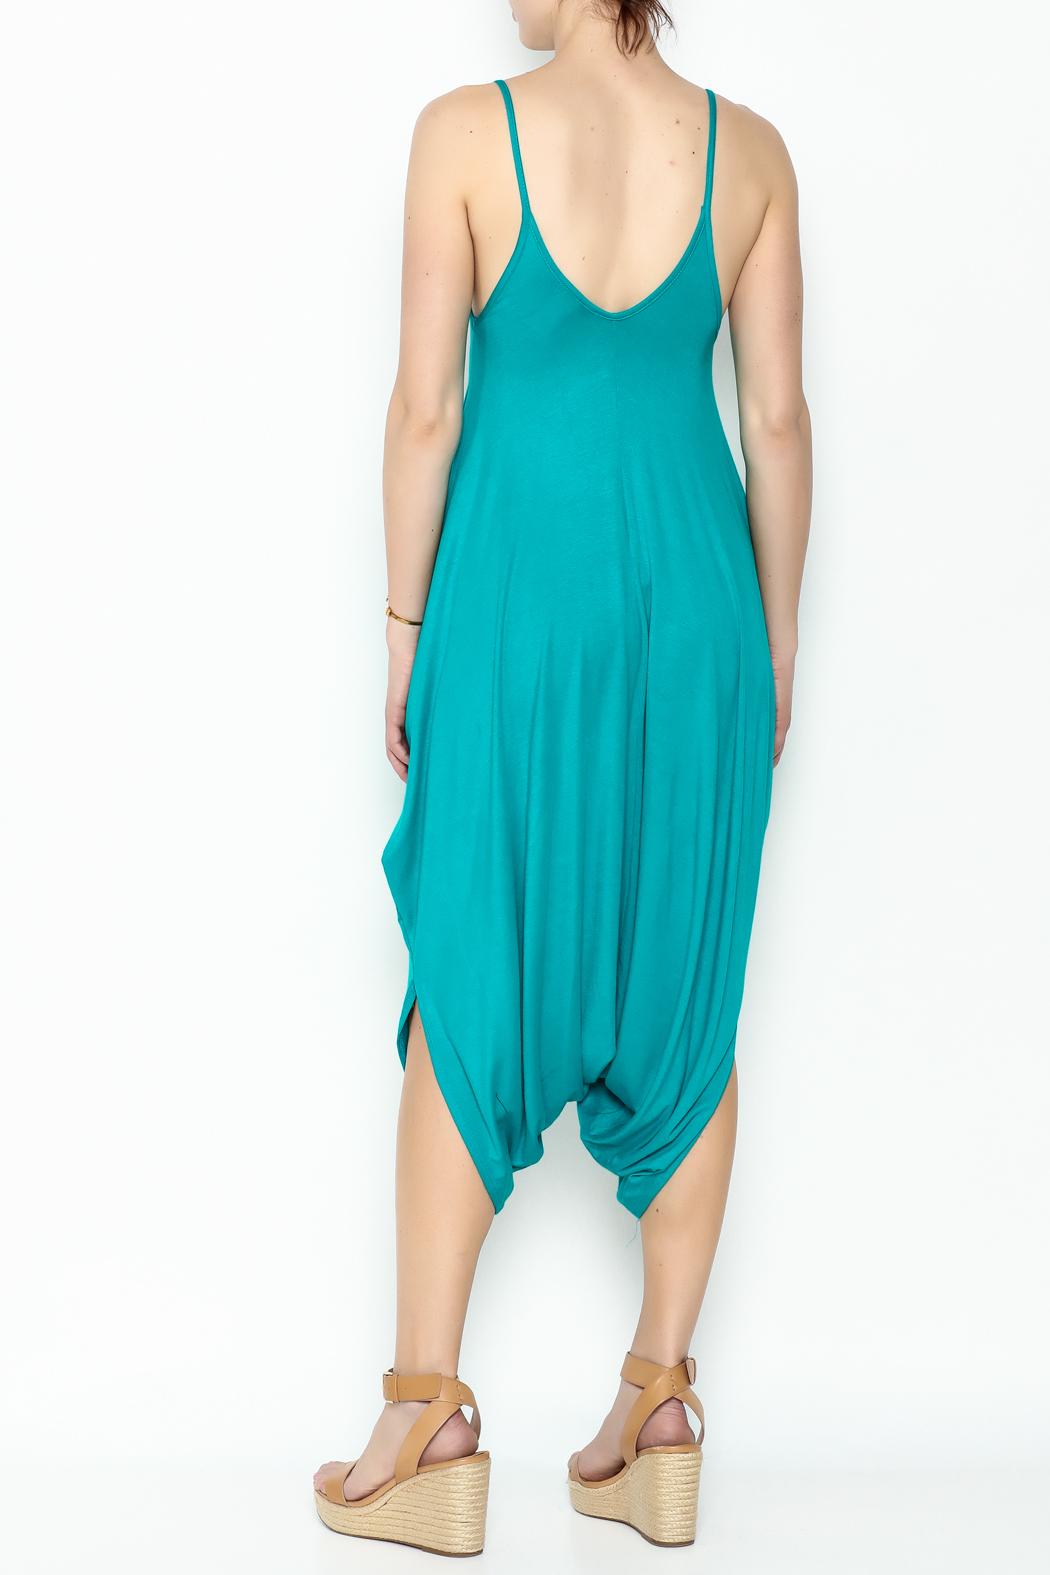 Sweet Candy Turquoise V Neck Jumpsuit - Back Cropped Image